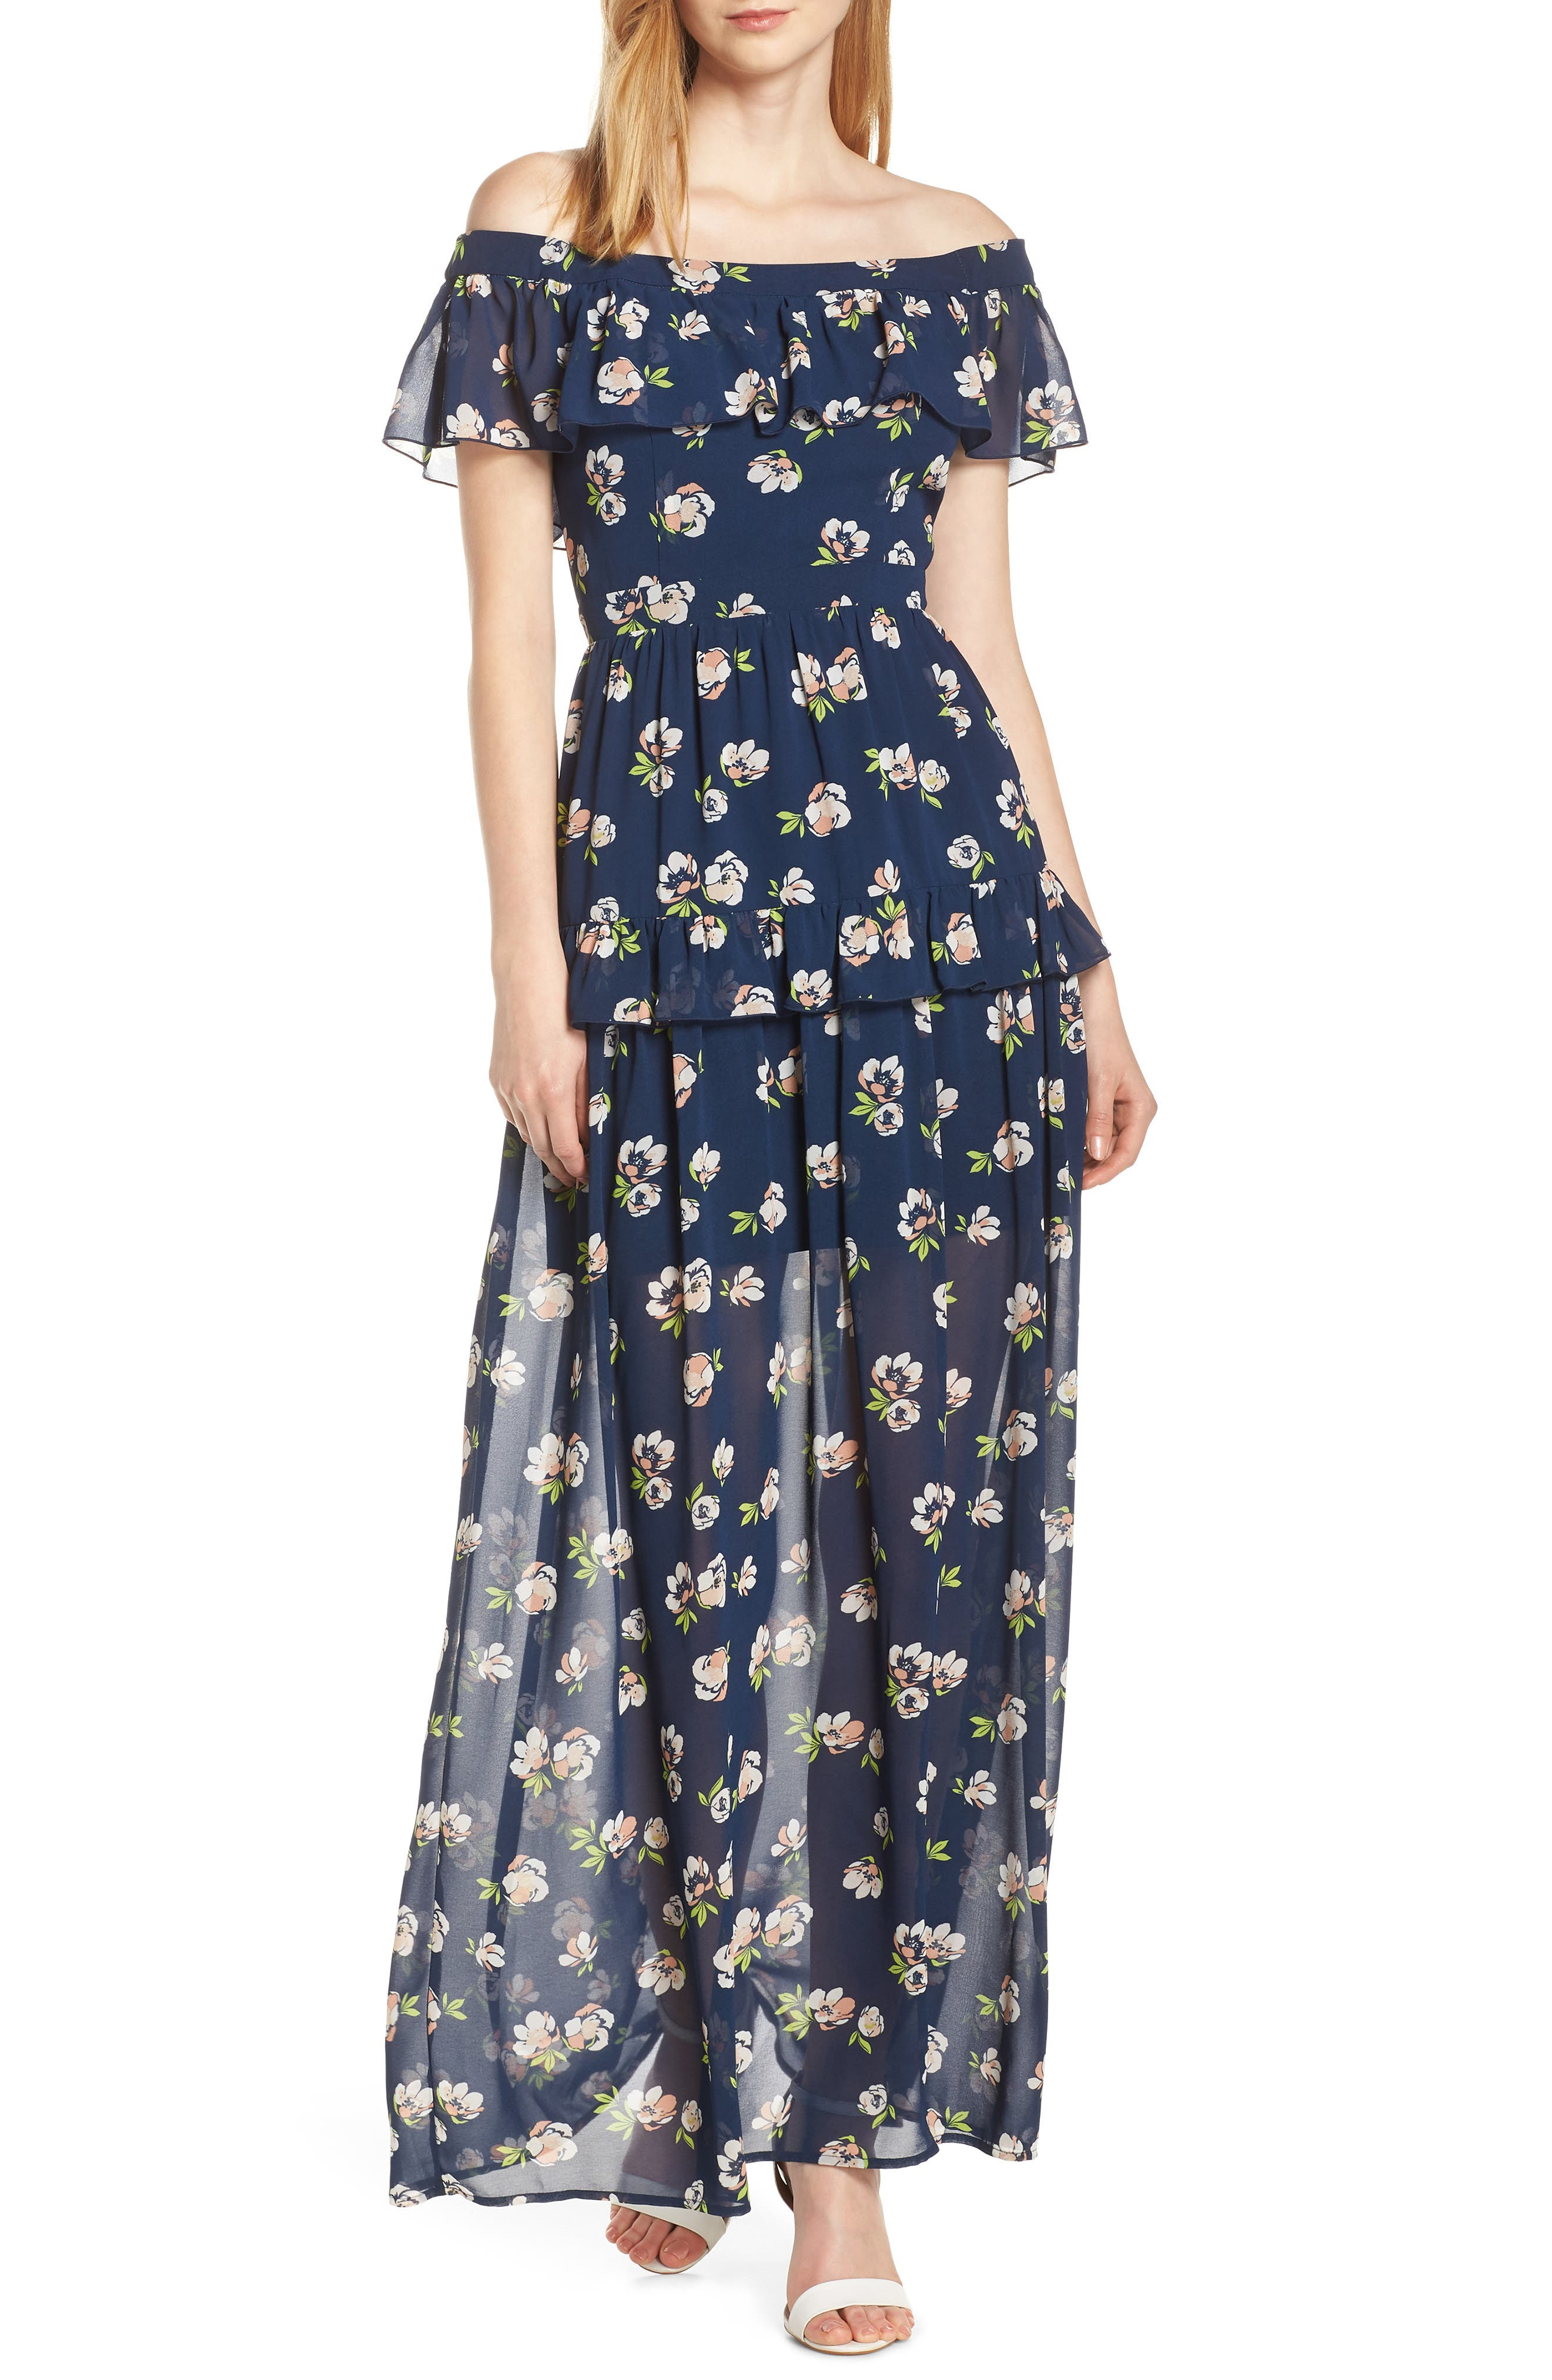 CHARLES HENRY, Off the Shoulder Ruffle Maxi Dress, Main thumbnail 1, color, NAVY PEACH FLORAL